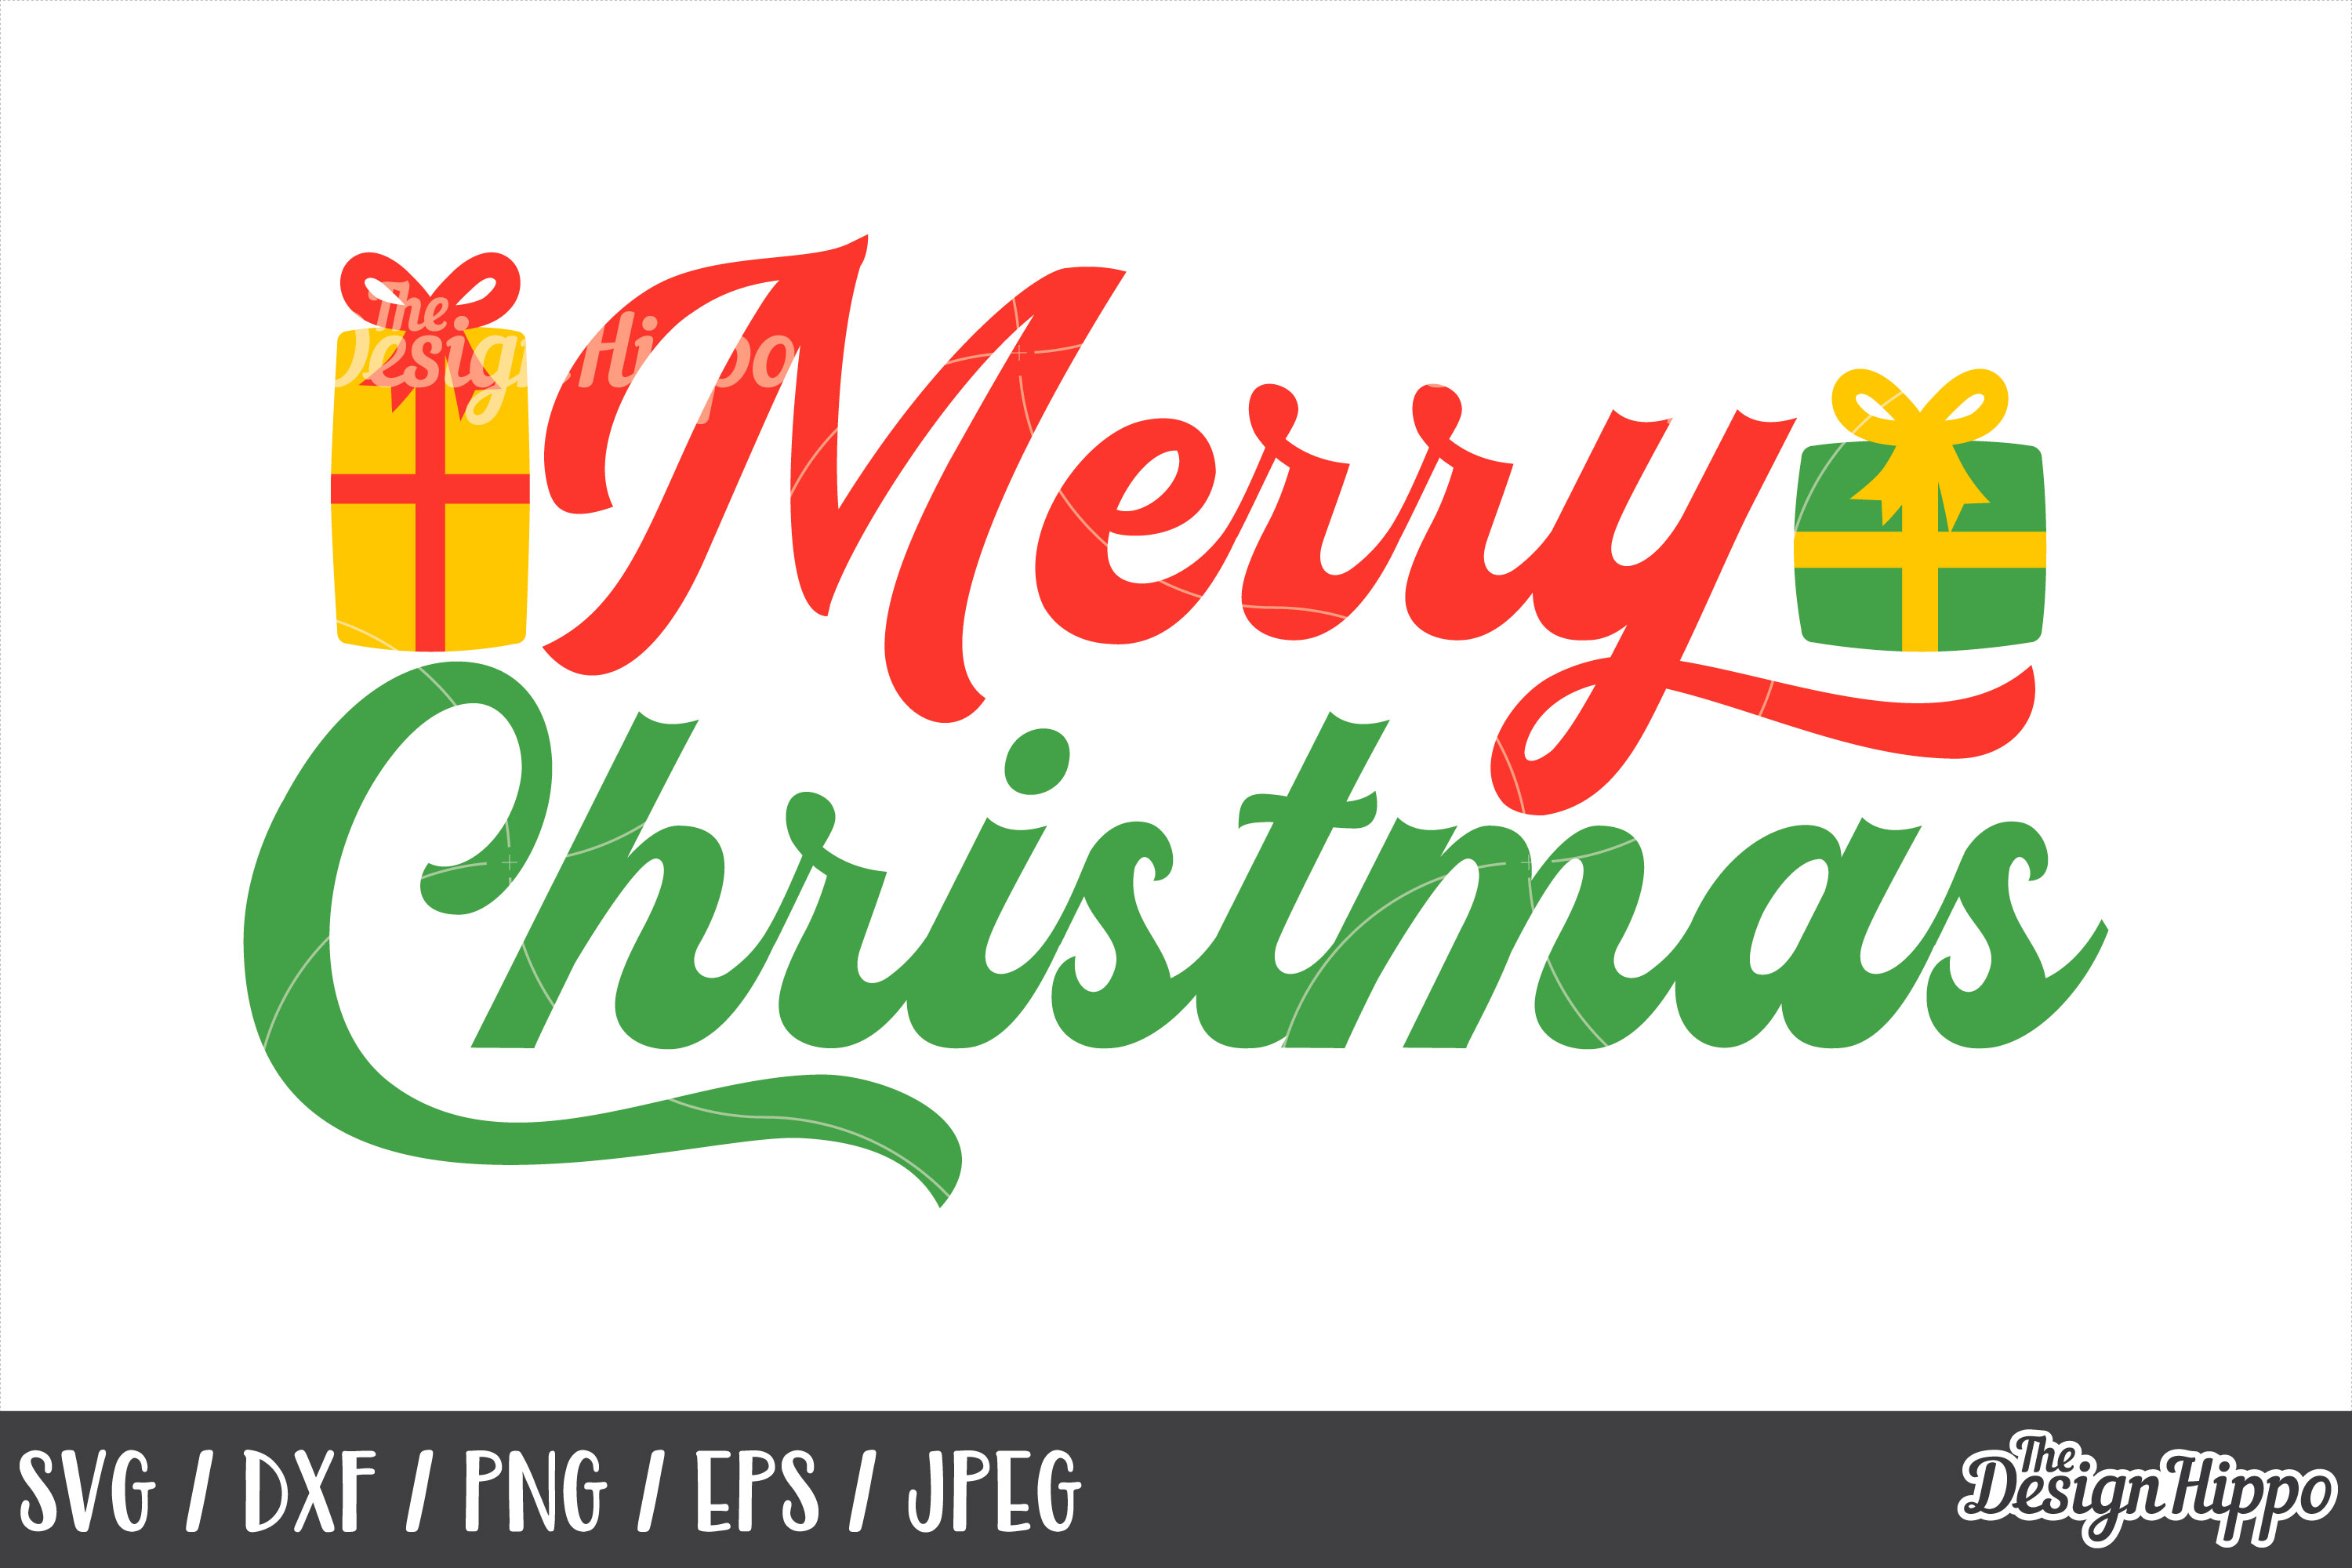 Merry Christmas SVG Bundle, Christmas SVG, PNG, DXF Cut File example image 7